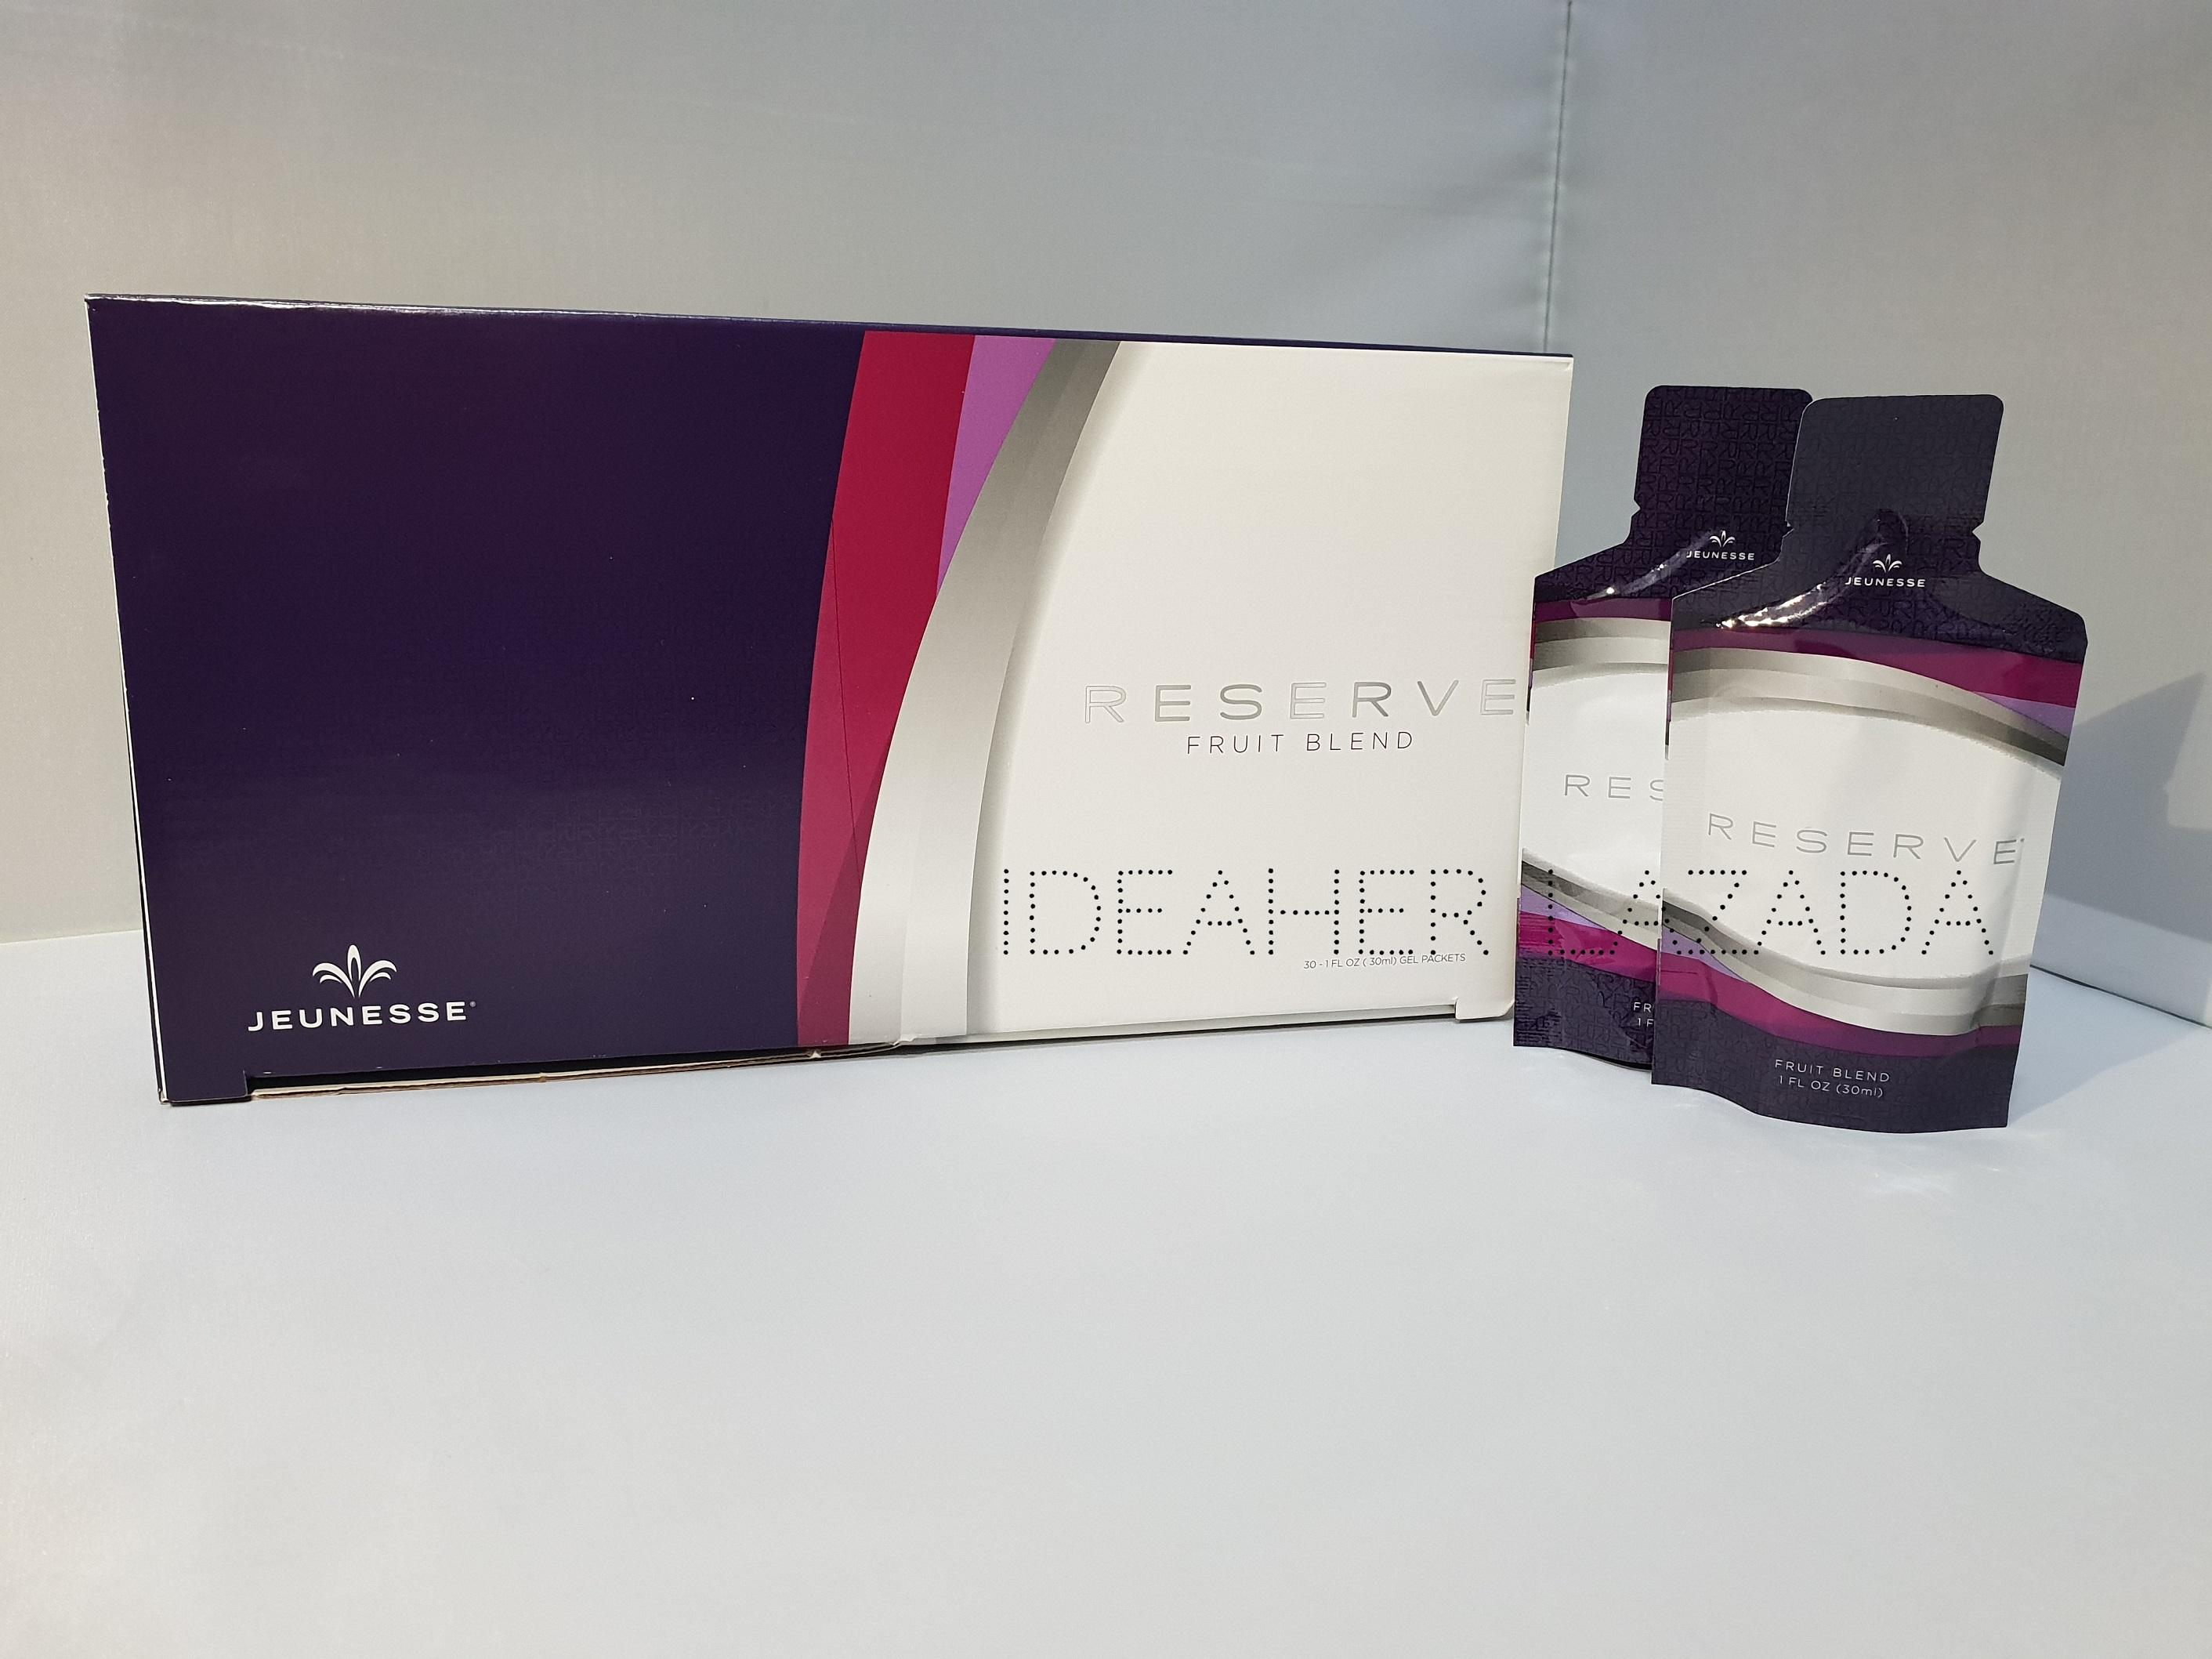 Jeunesse Reserve Fruit Blend 30 Packs (not Malaysia) - Anti Ageing, Antioxidant, Metabolism, Constipation, Boost Energy By Ideaher.